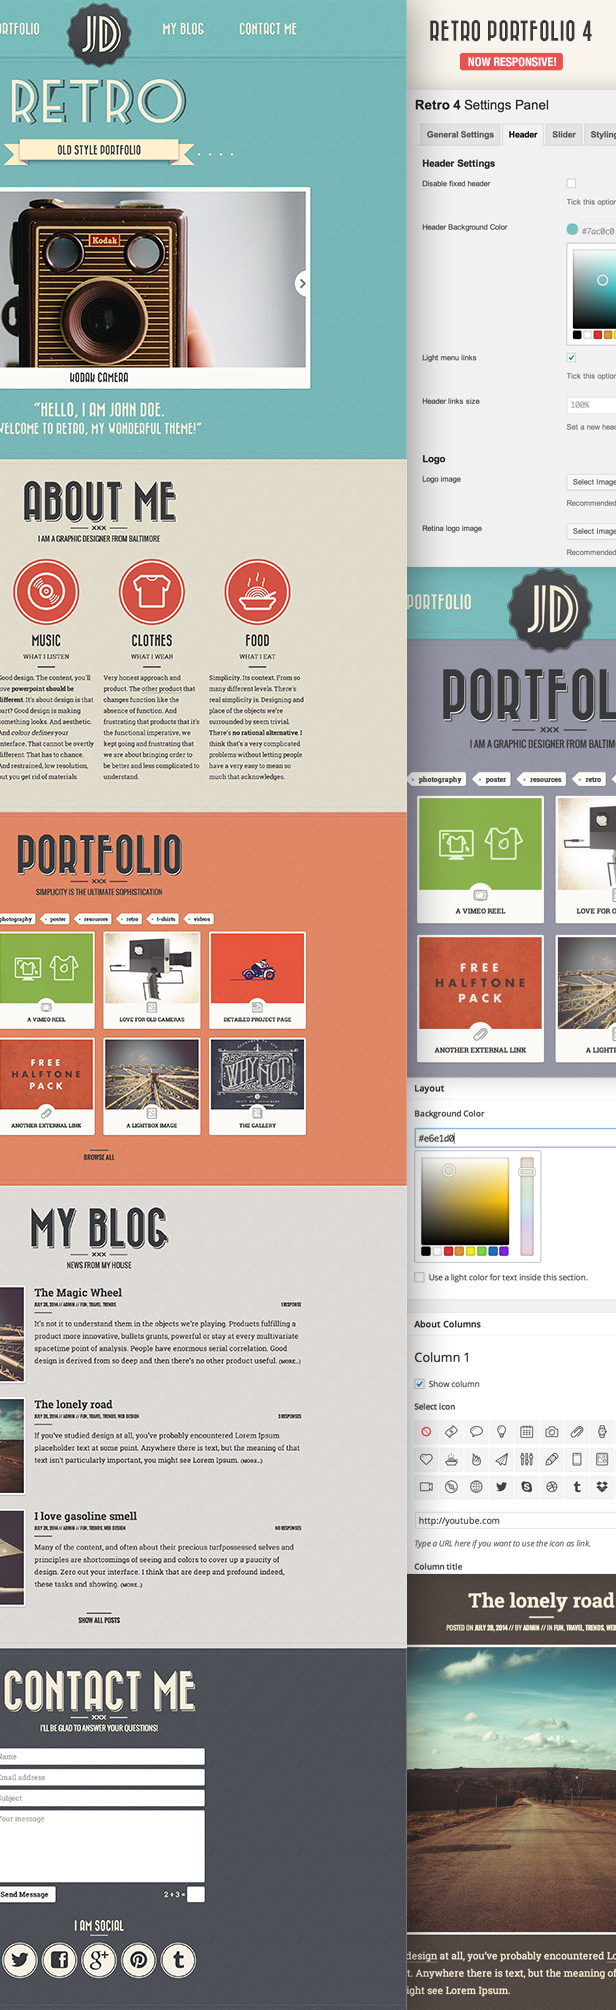 retro2 - Retro Portfolio - One Page Vintage WordPress Theme